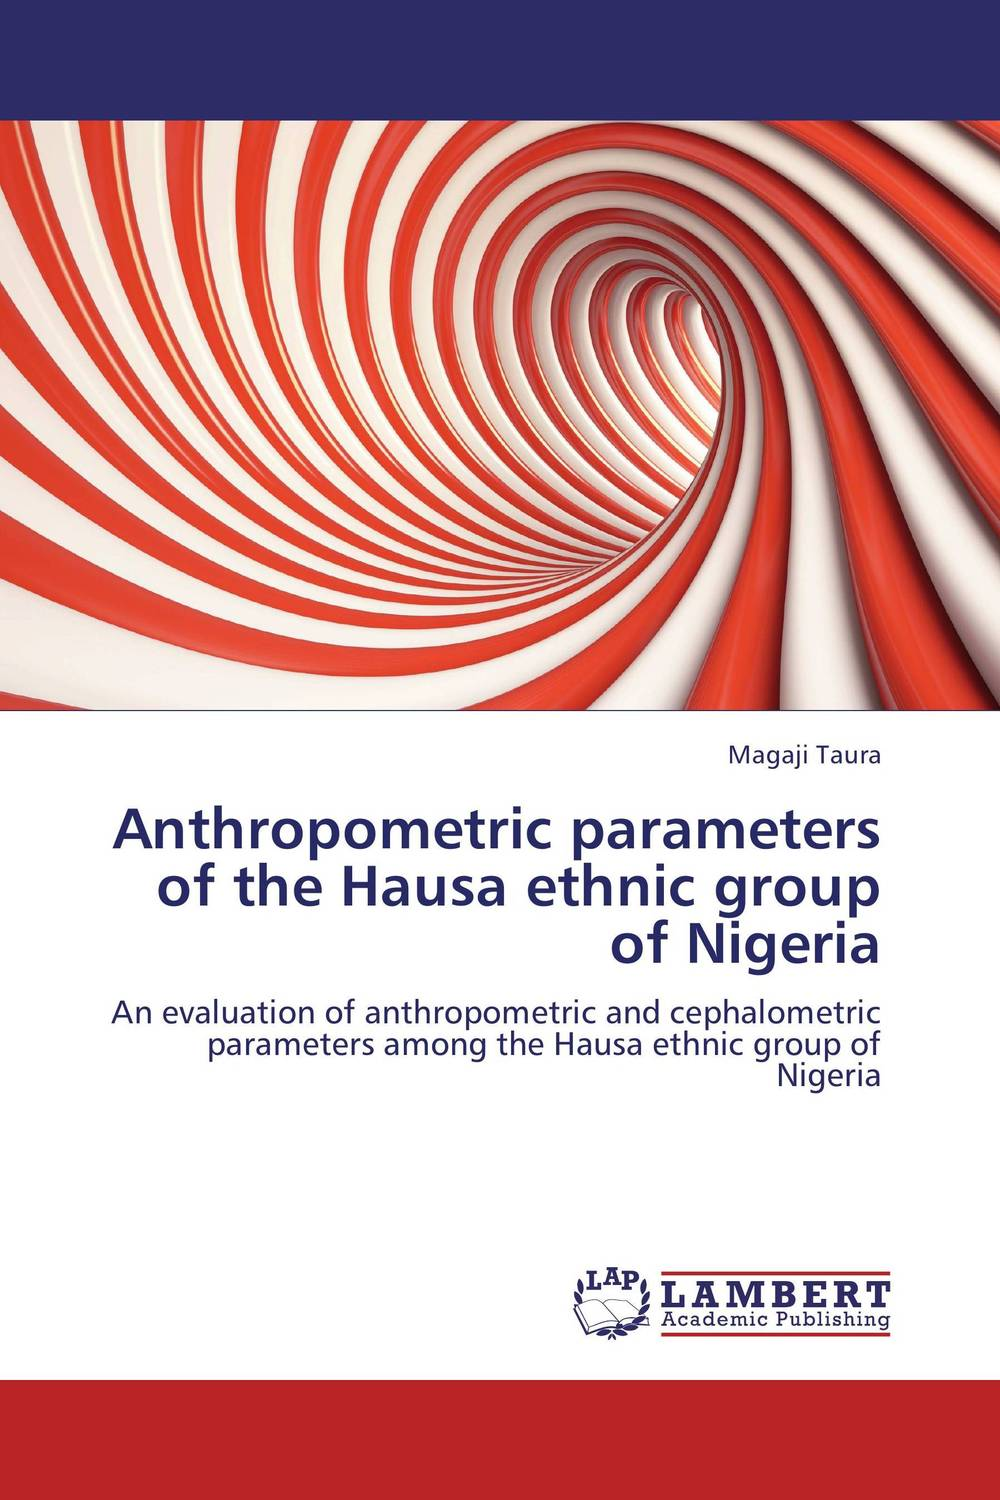 Anthropometric parameters  of   the Hausa ethnic group of Nigeria